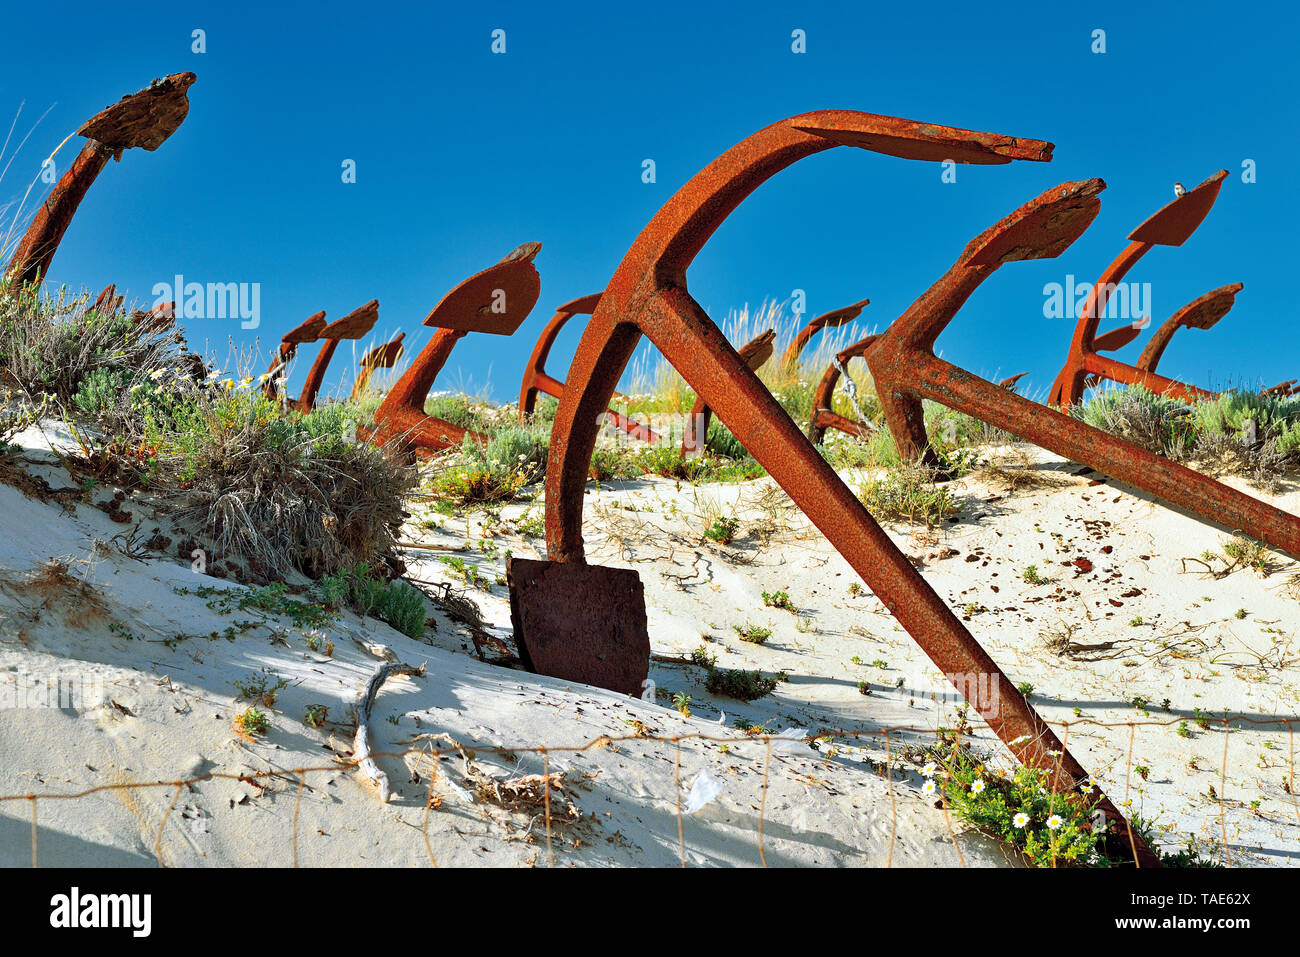 Dozens of anchors lying in sand dune contrasting with blue sky Stock Photo